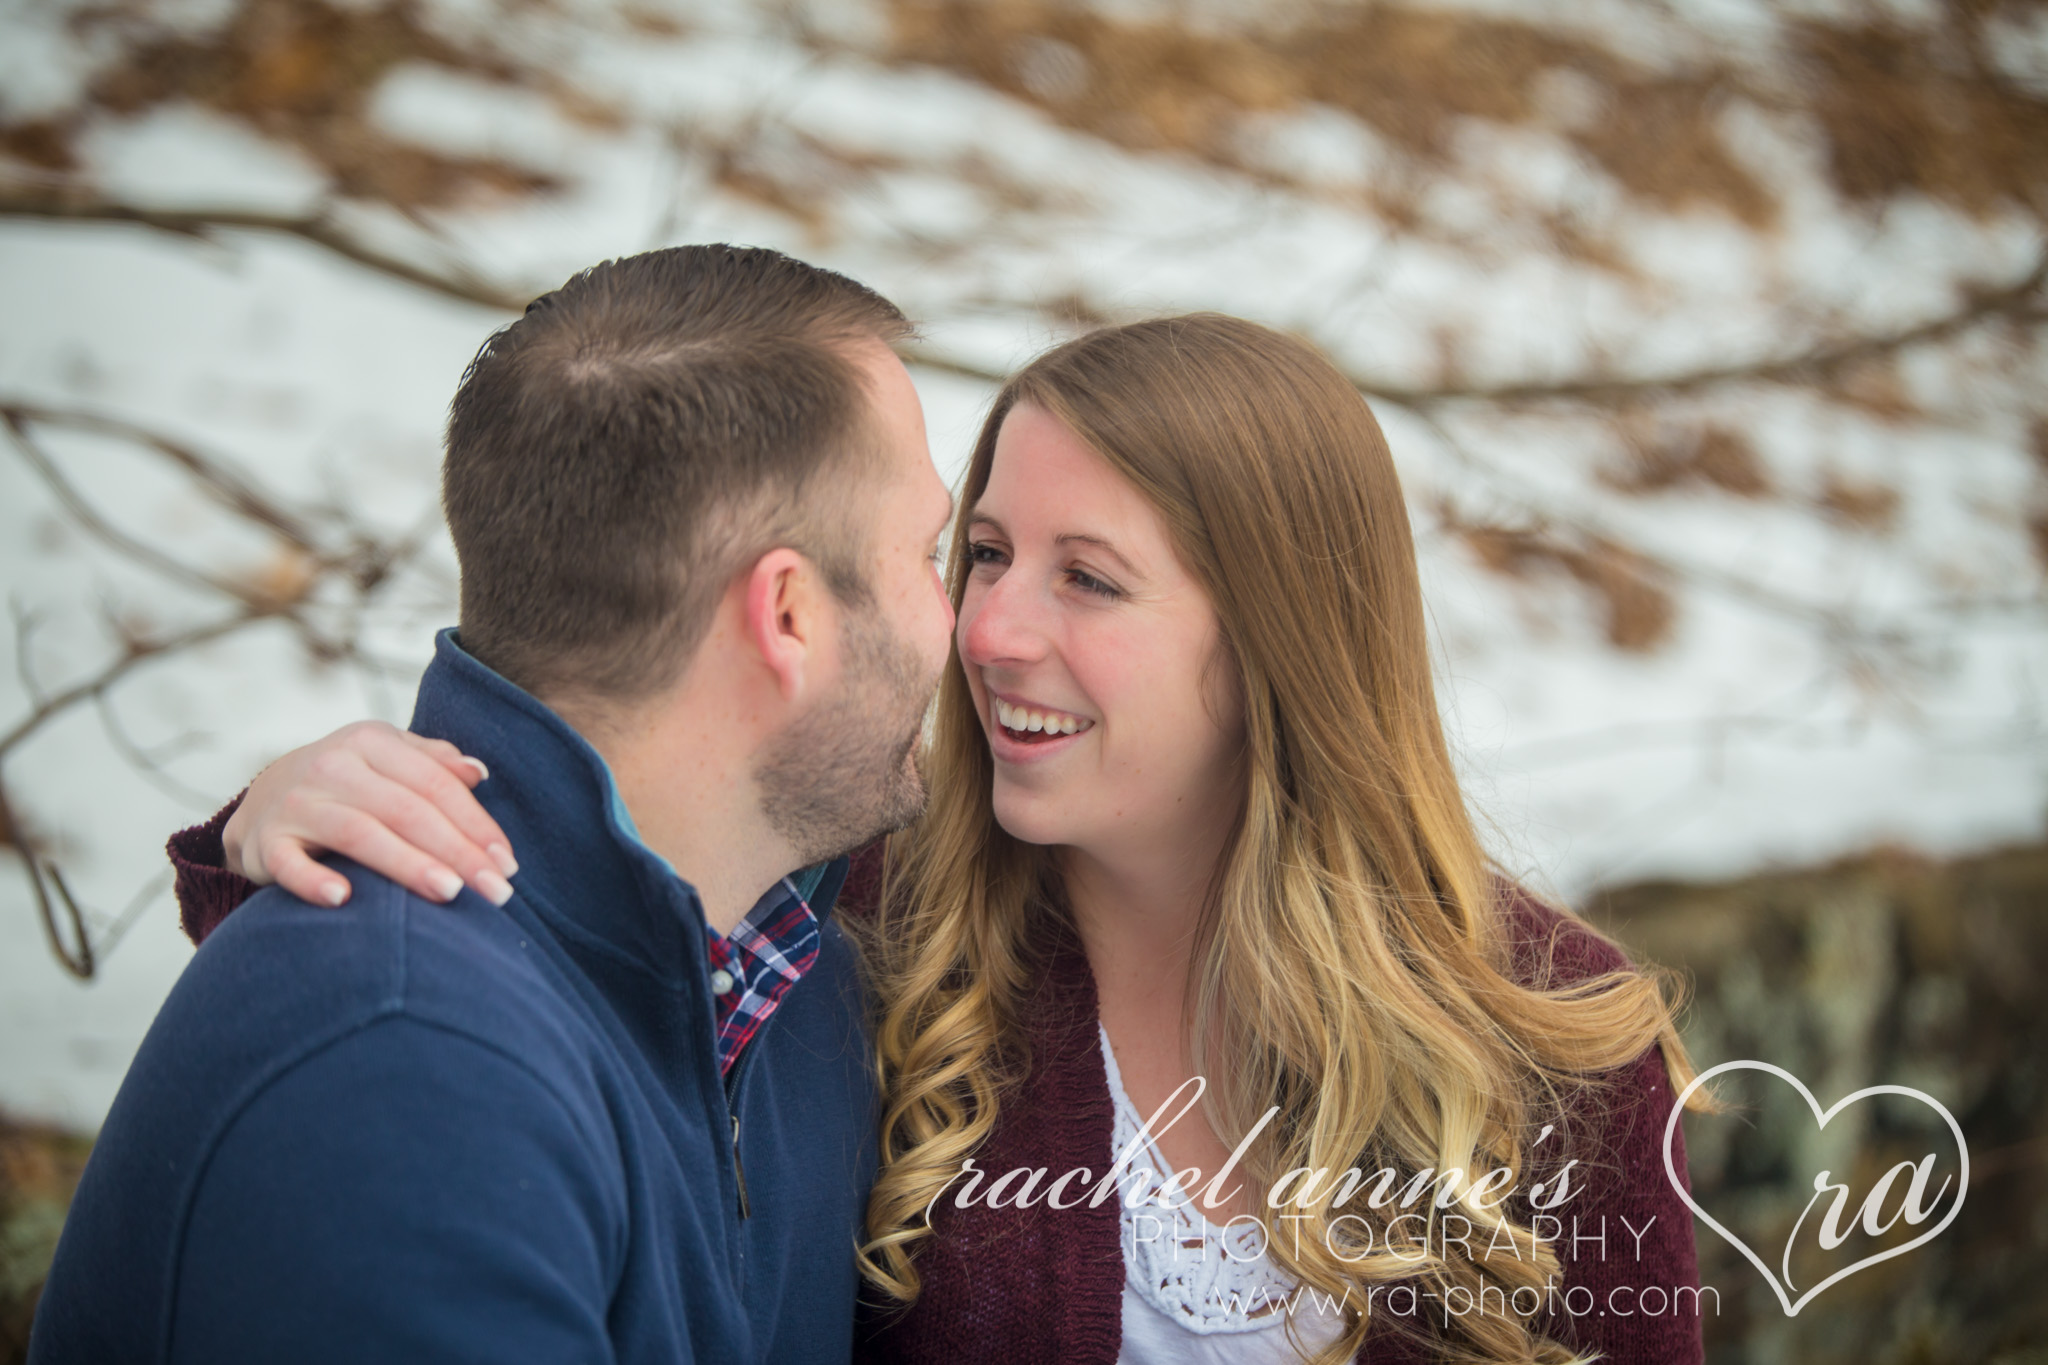 040-JKM-DUBOIS-PA-ENGAGEMENT-PHOTOGRAPHY.jpg